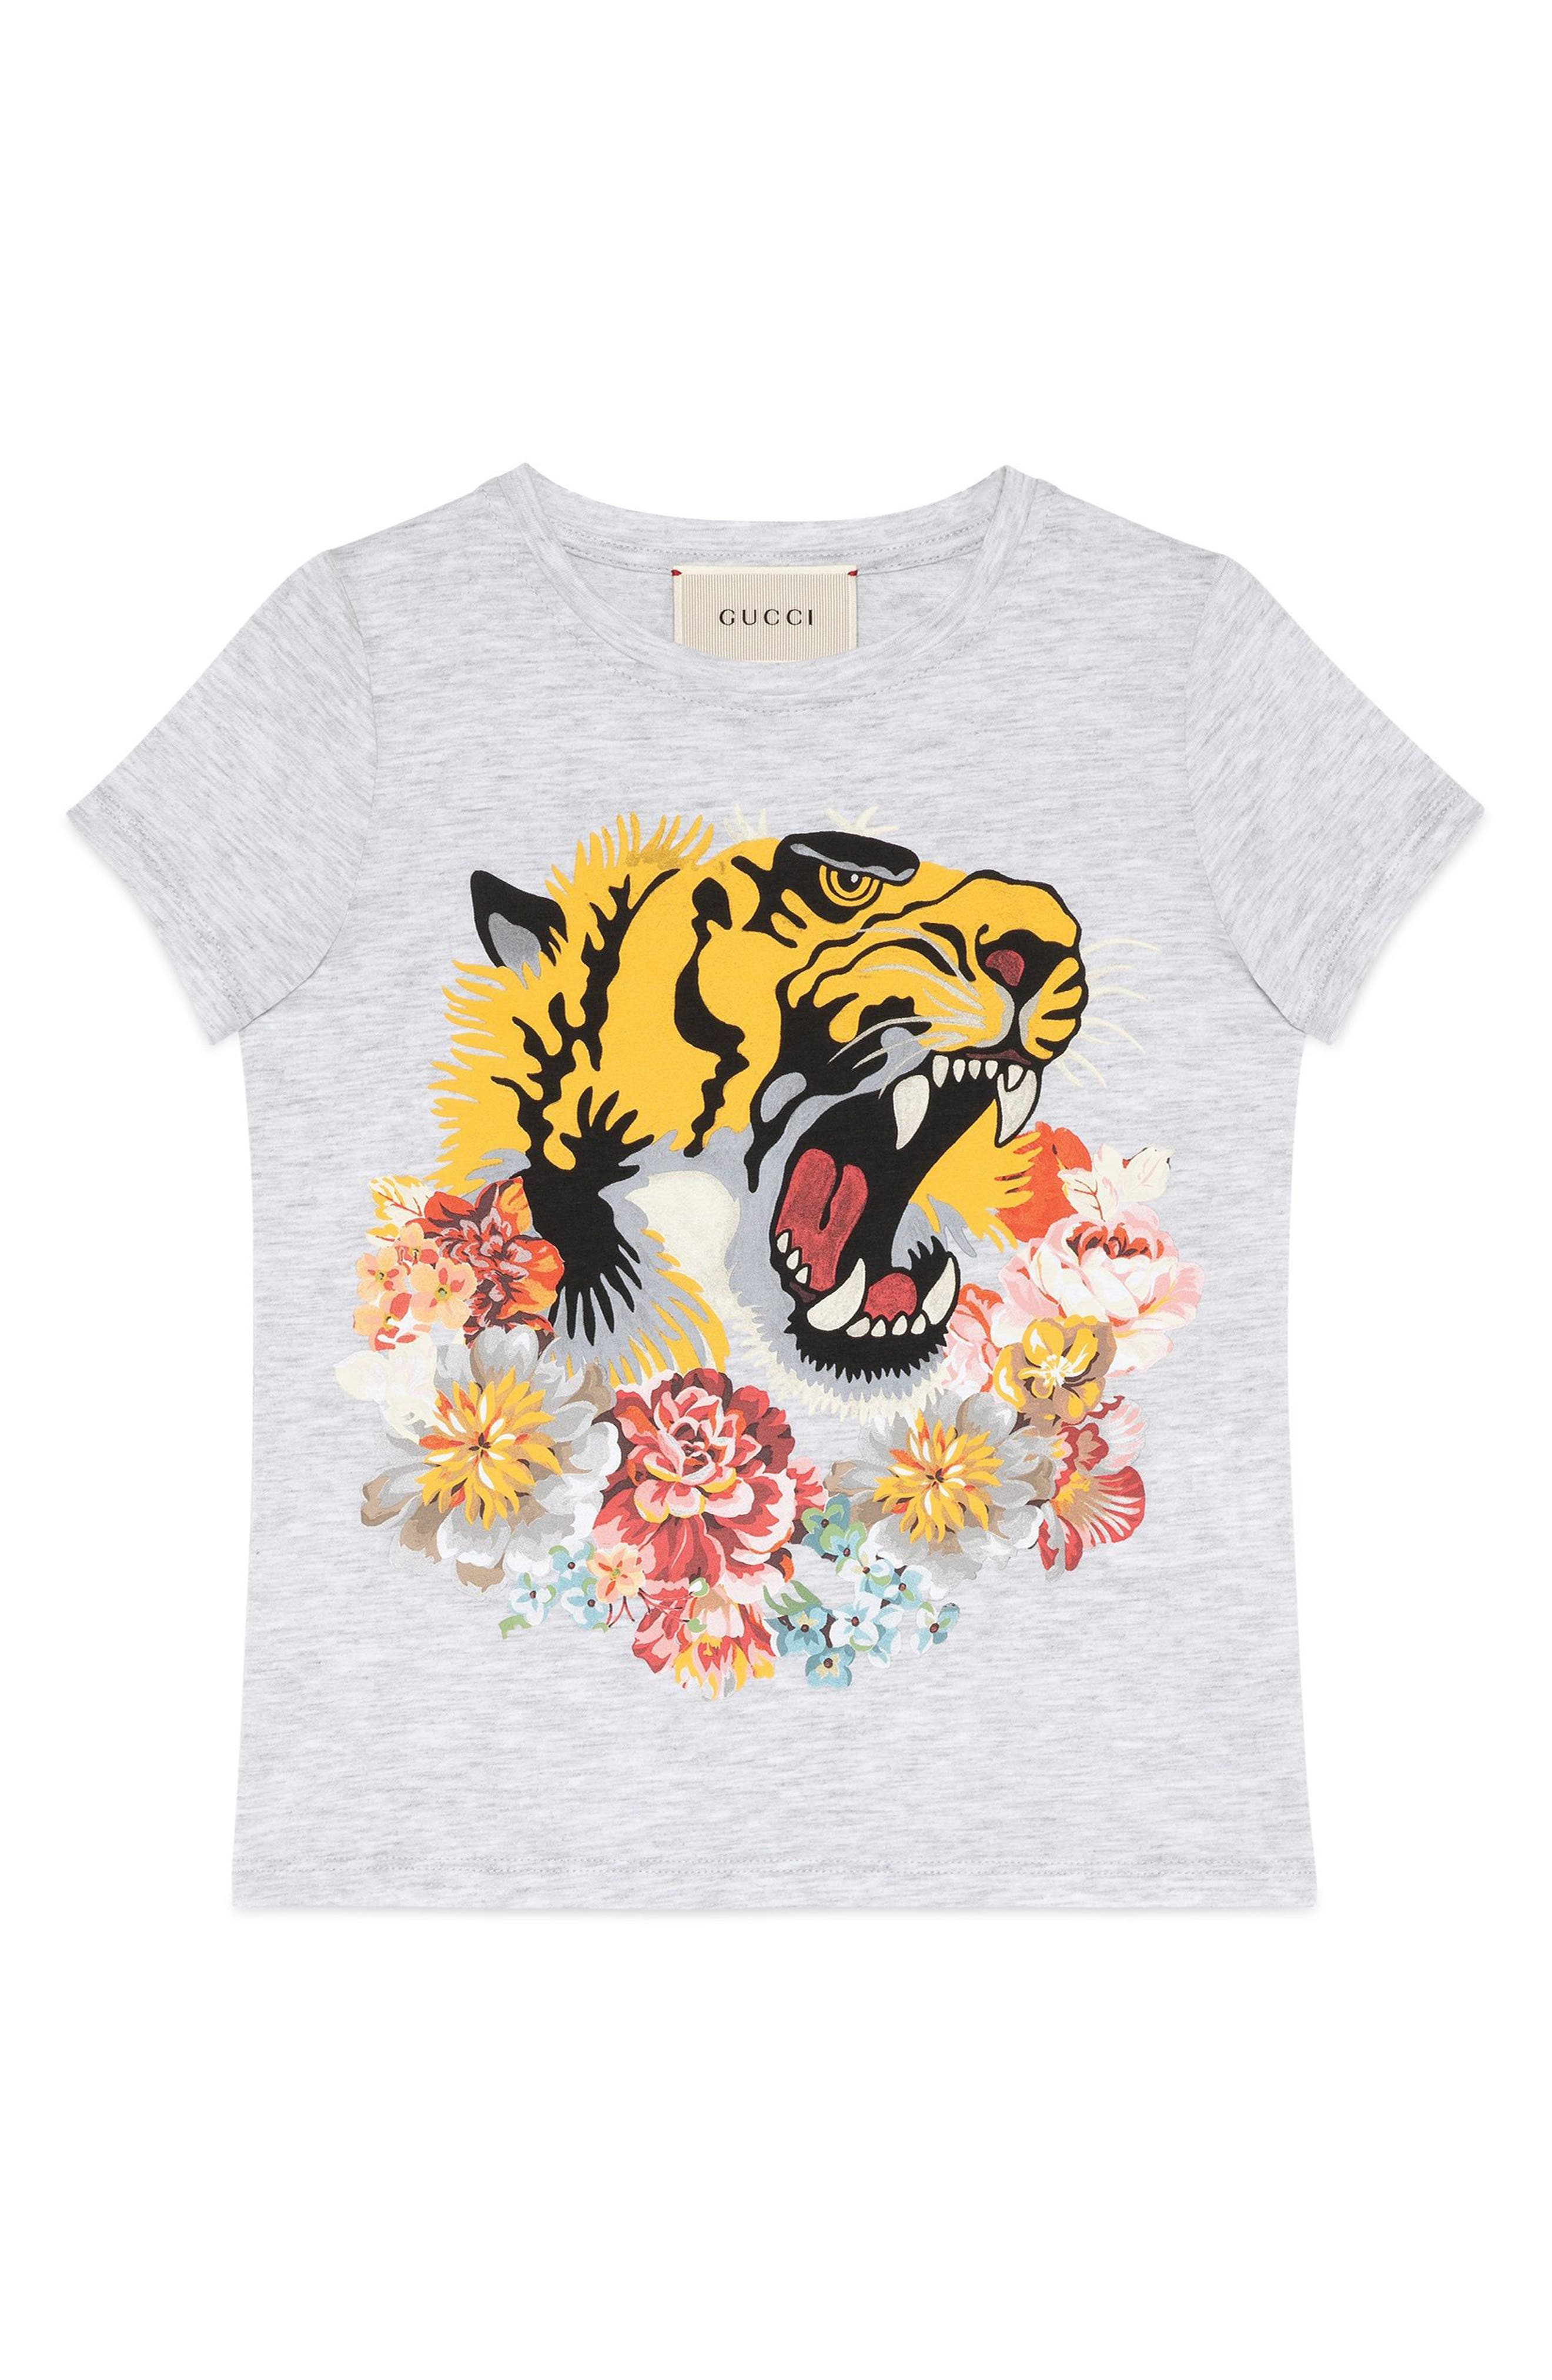 Gucci Tiger Graphic Tee (Little Girls & Big Girls)